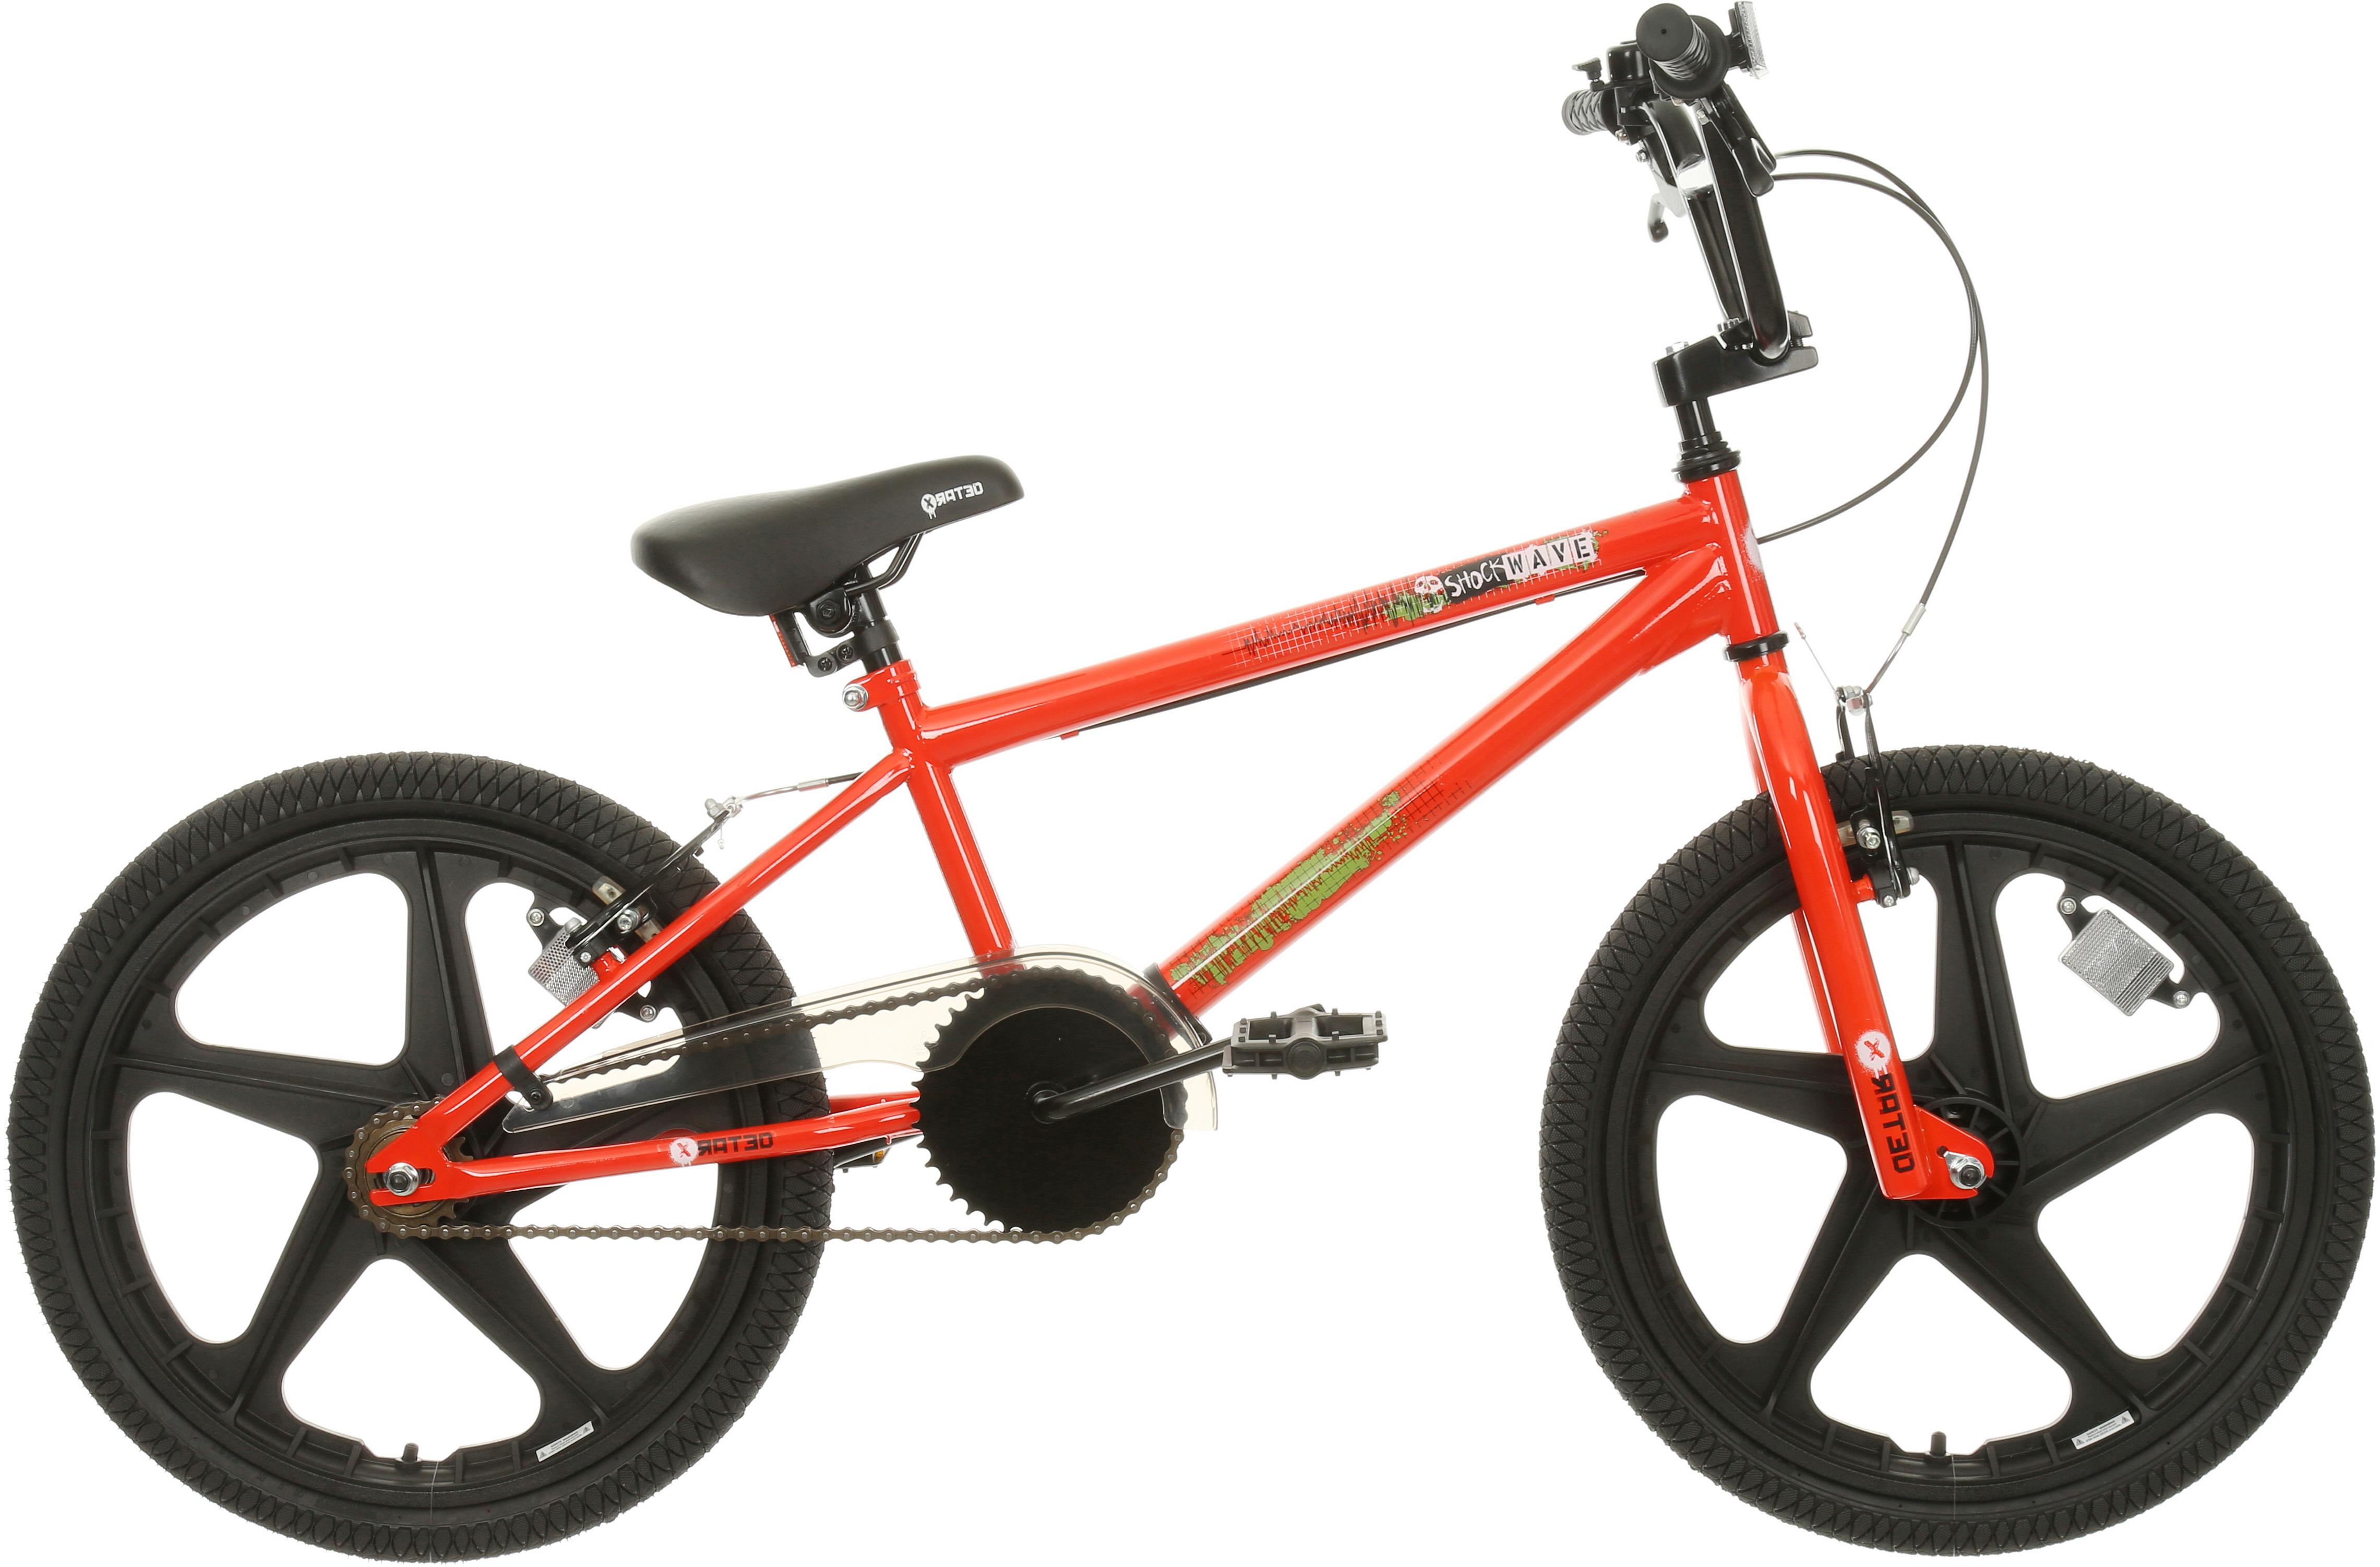 X-Rated Shockwave Kids BMX Bike - 20 inch Wheel